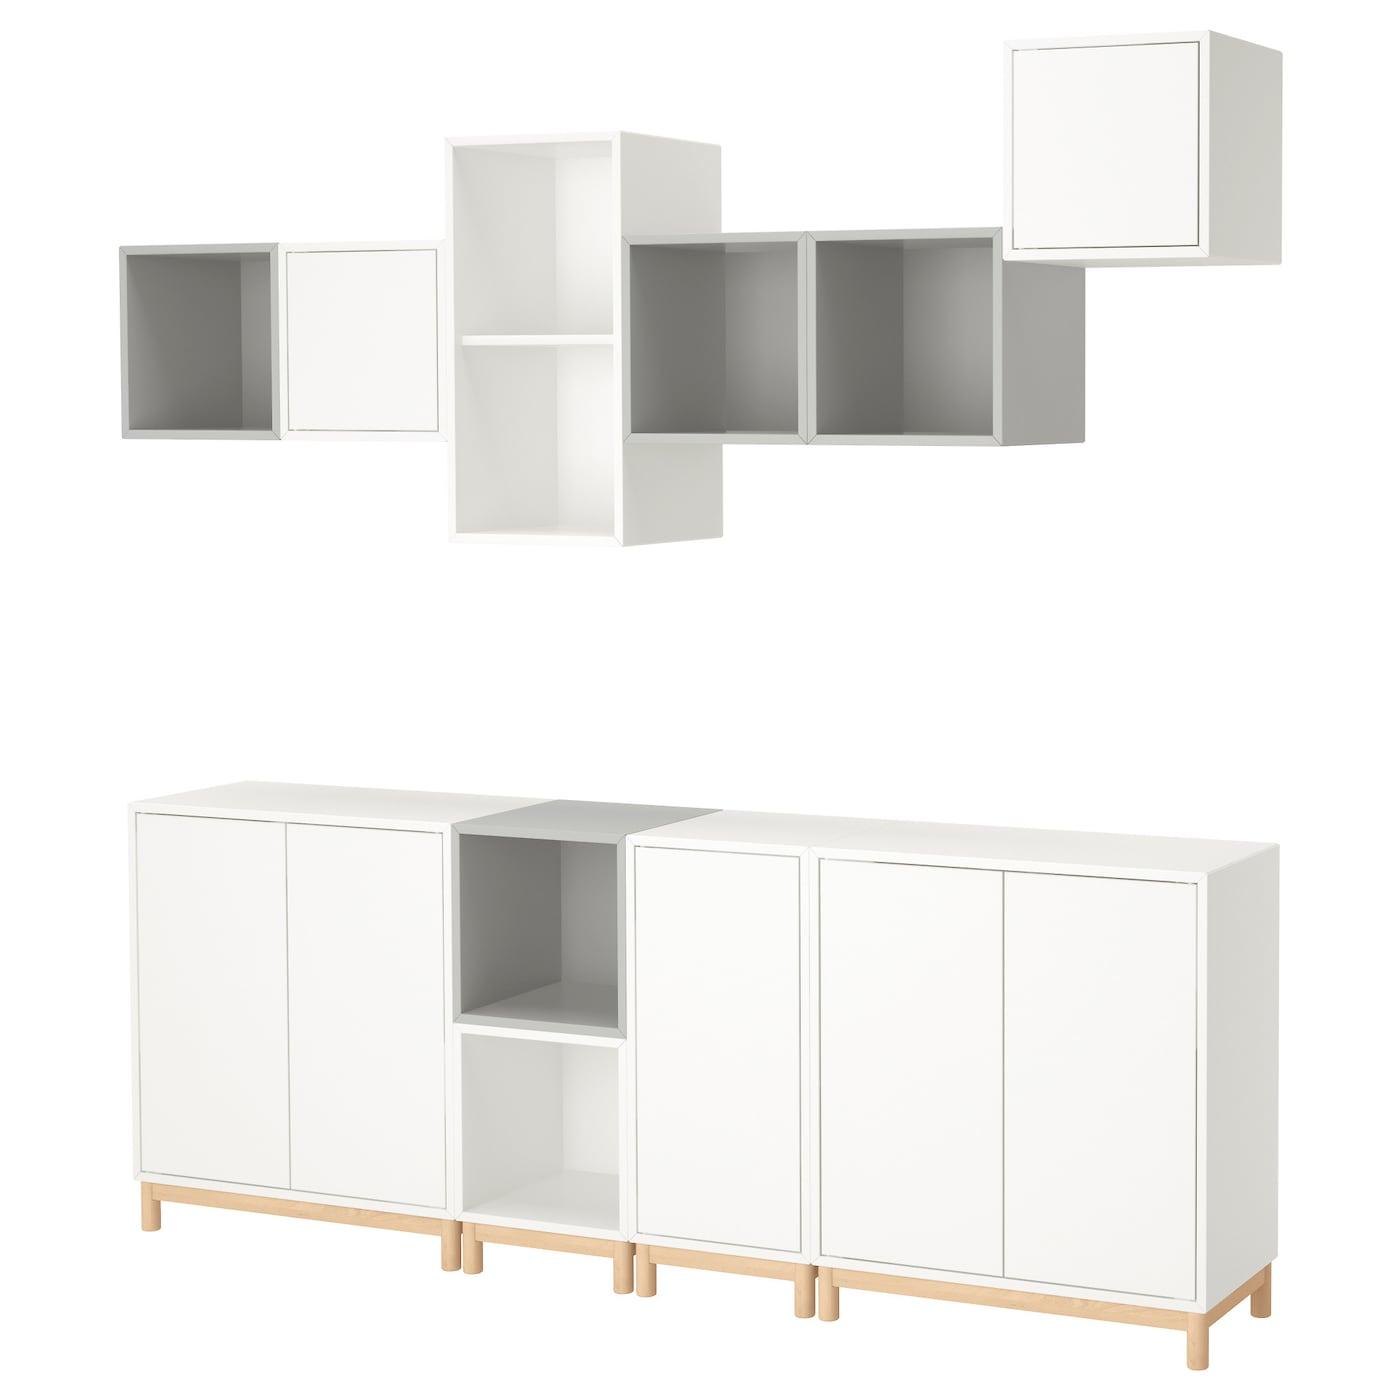 Eket cabinet combination with legs white light grey 210x35x210 cm ikea - Ikea rangement mural ...